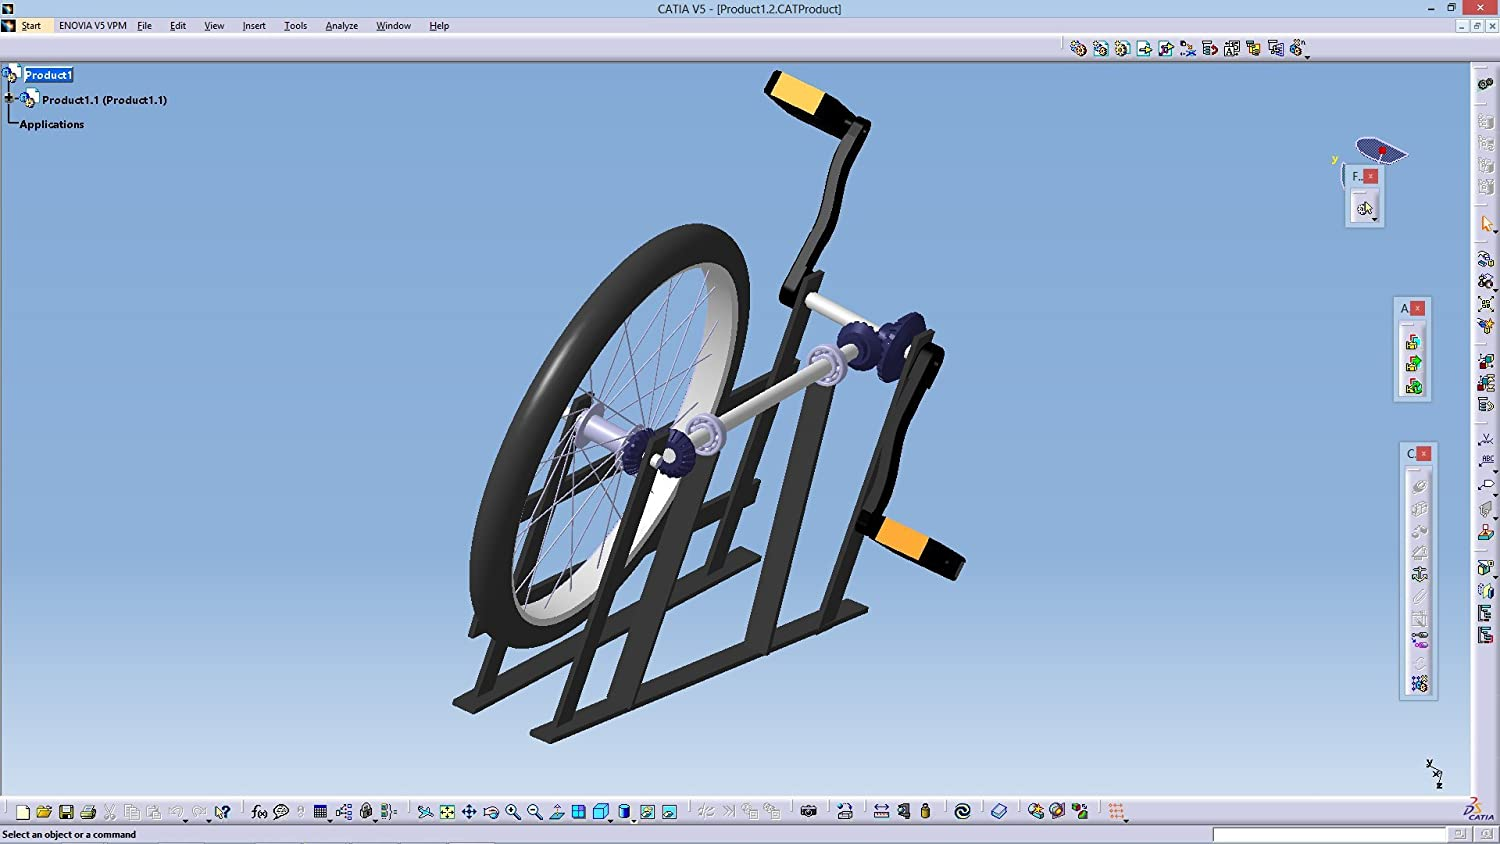 Mechanical Engineering Project [ Shaft Driven Cycle ] +